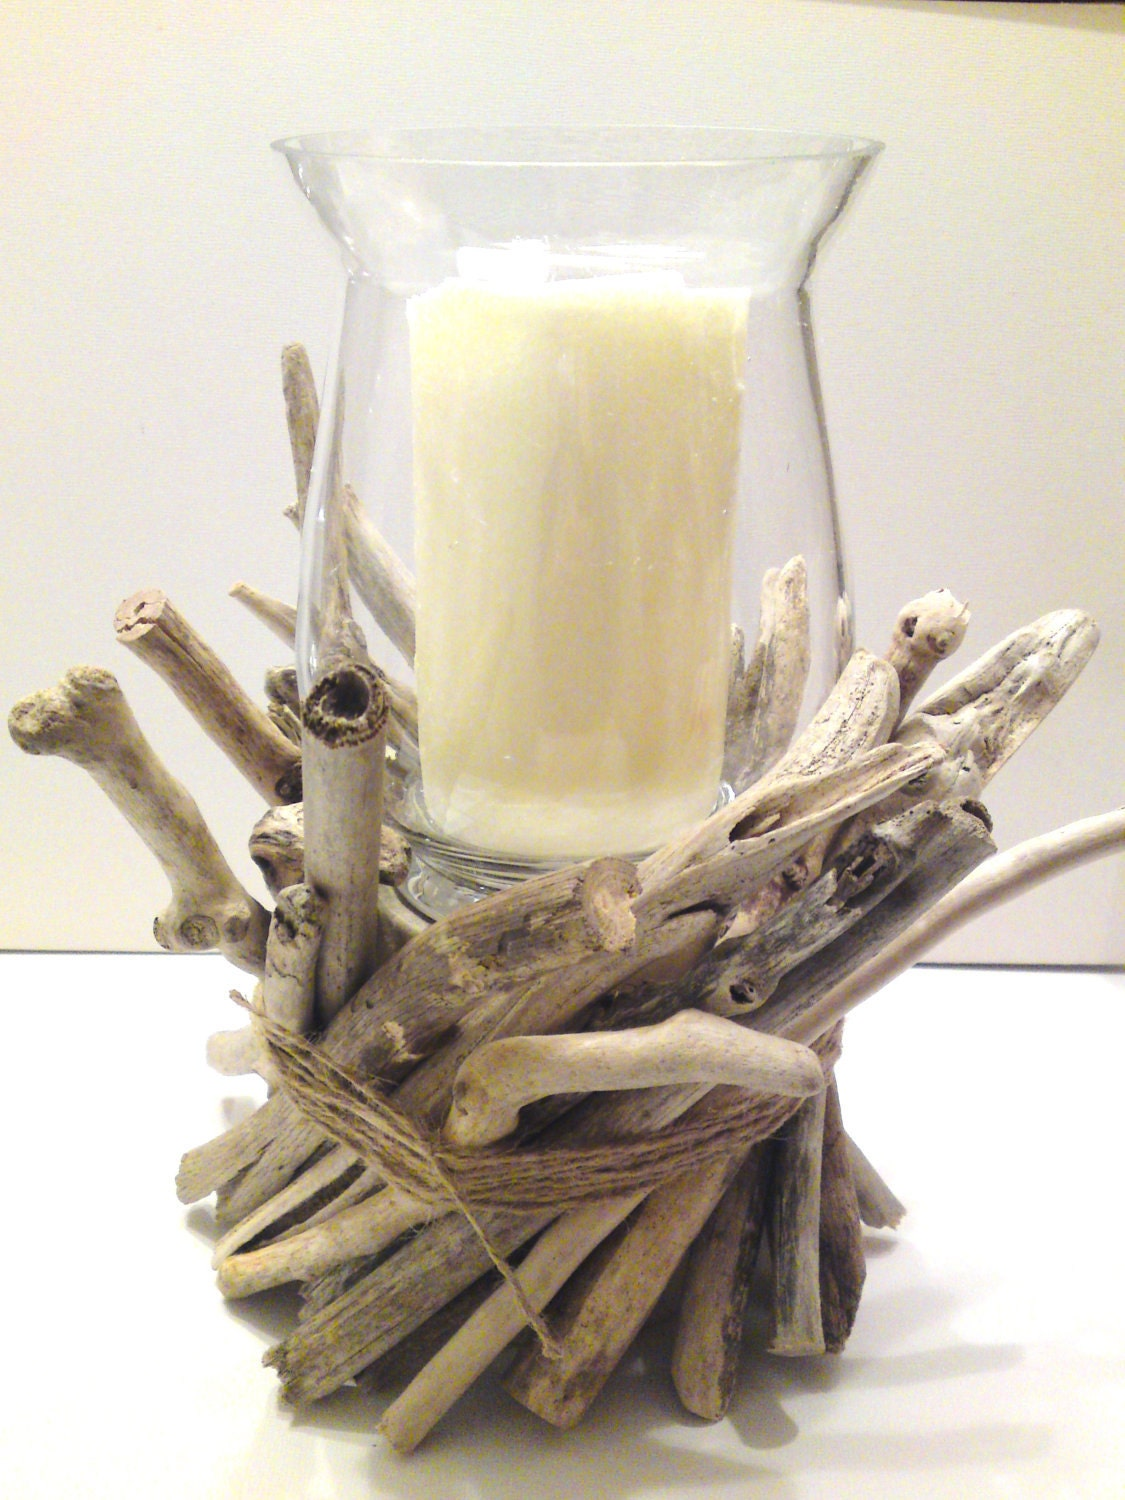 Sale driftwood centerpiece candle holder